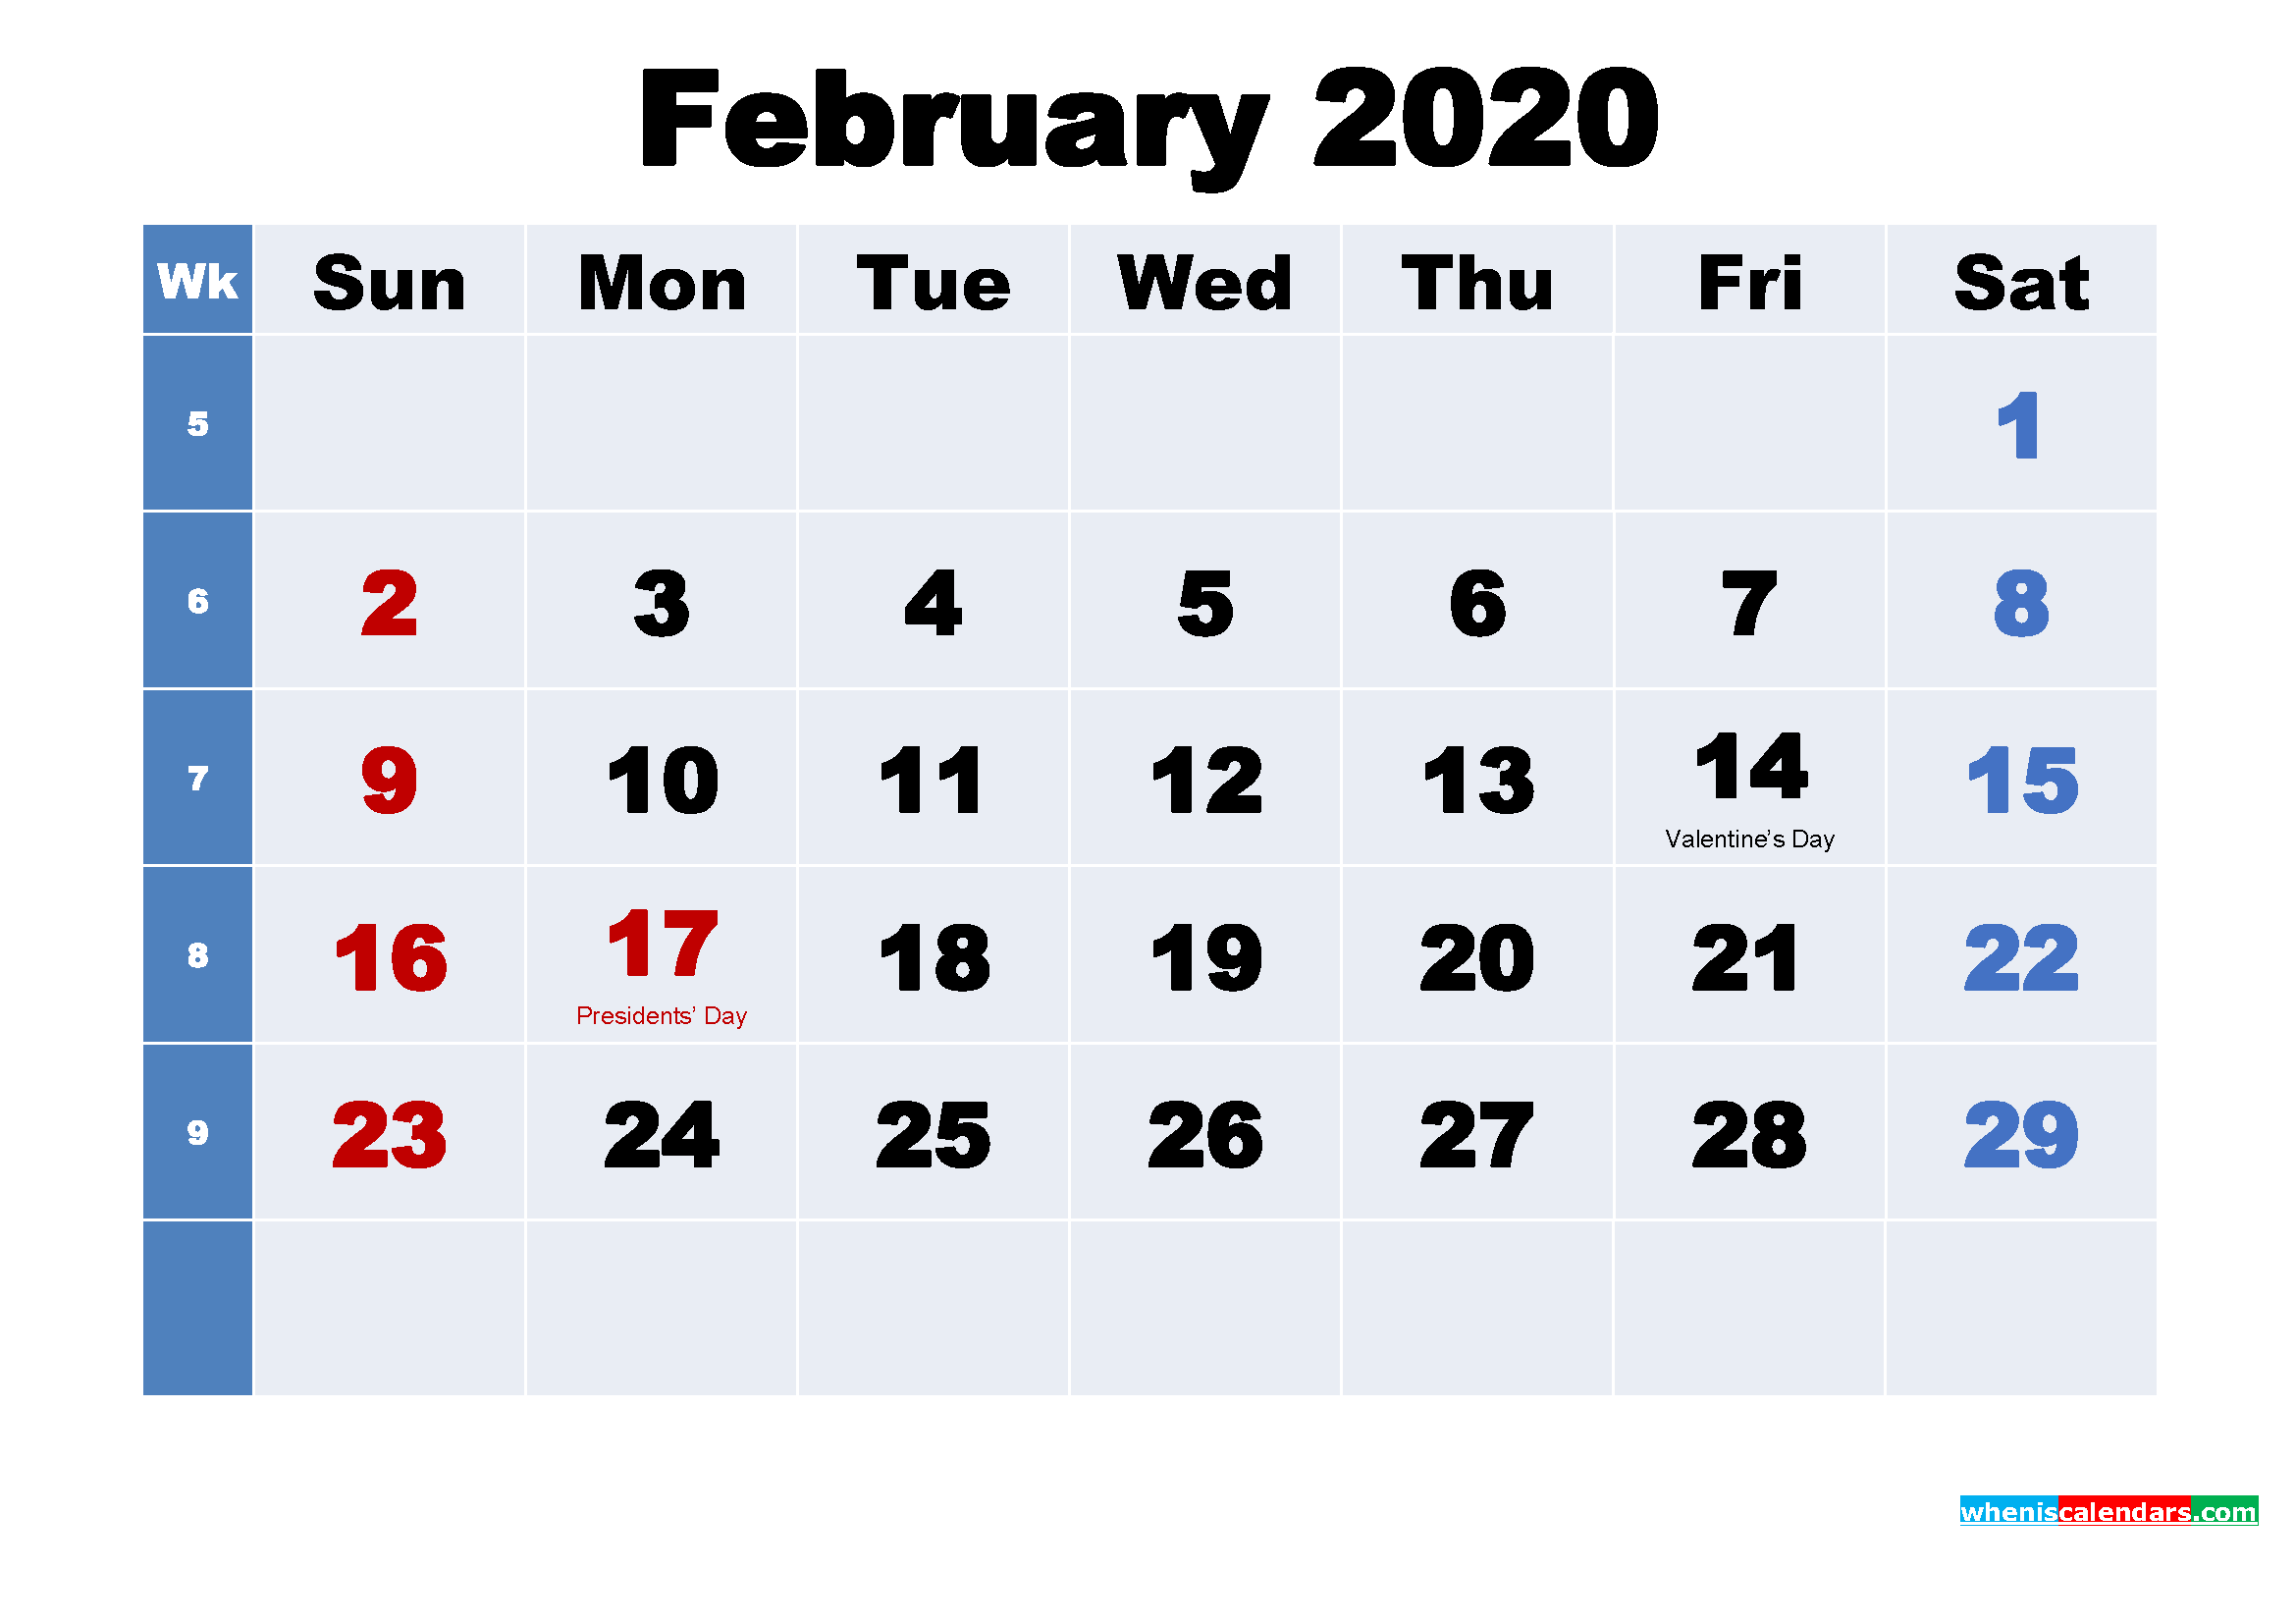 Free 2020 Printable Calendar February as Word, PDF